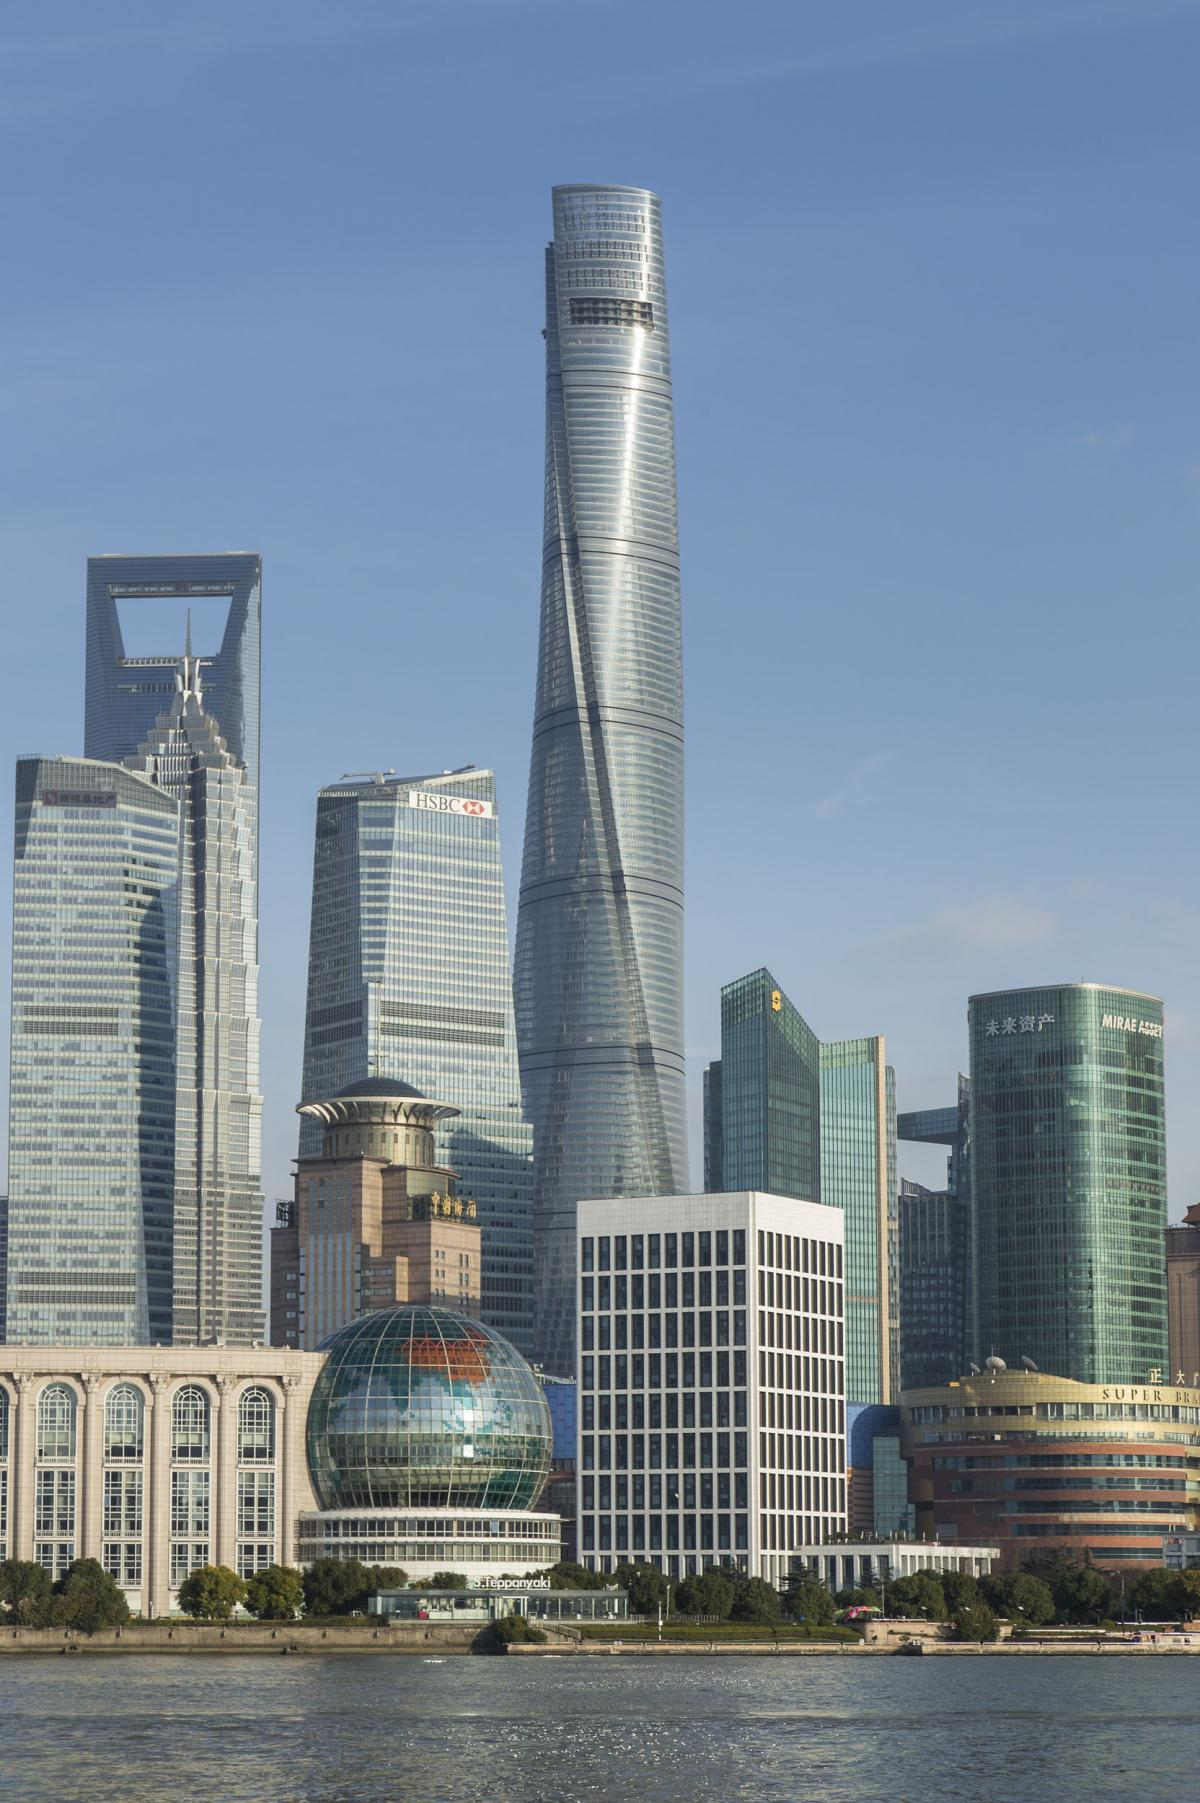 It's estimated 20,000 to 30,000 people will pass through Shanghai Tower each day.